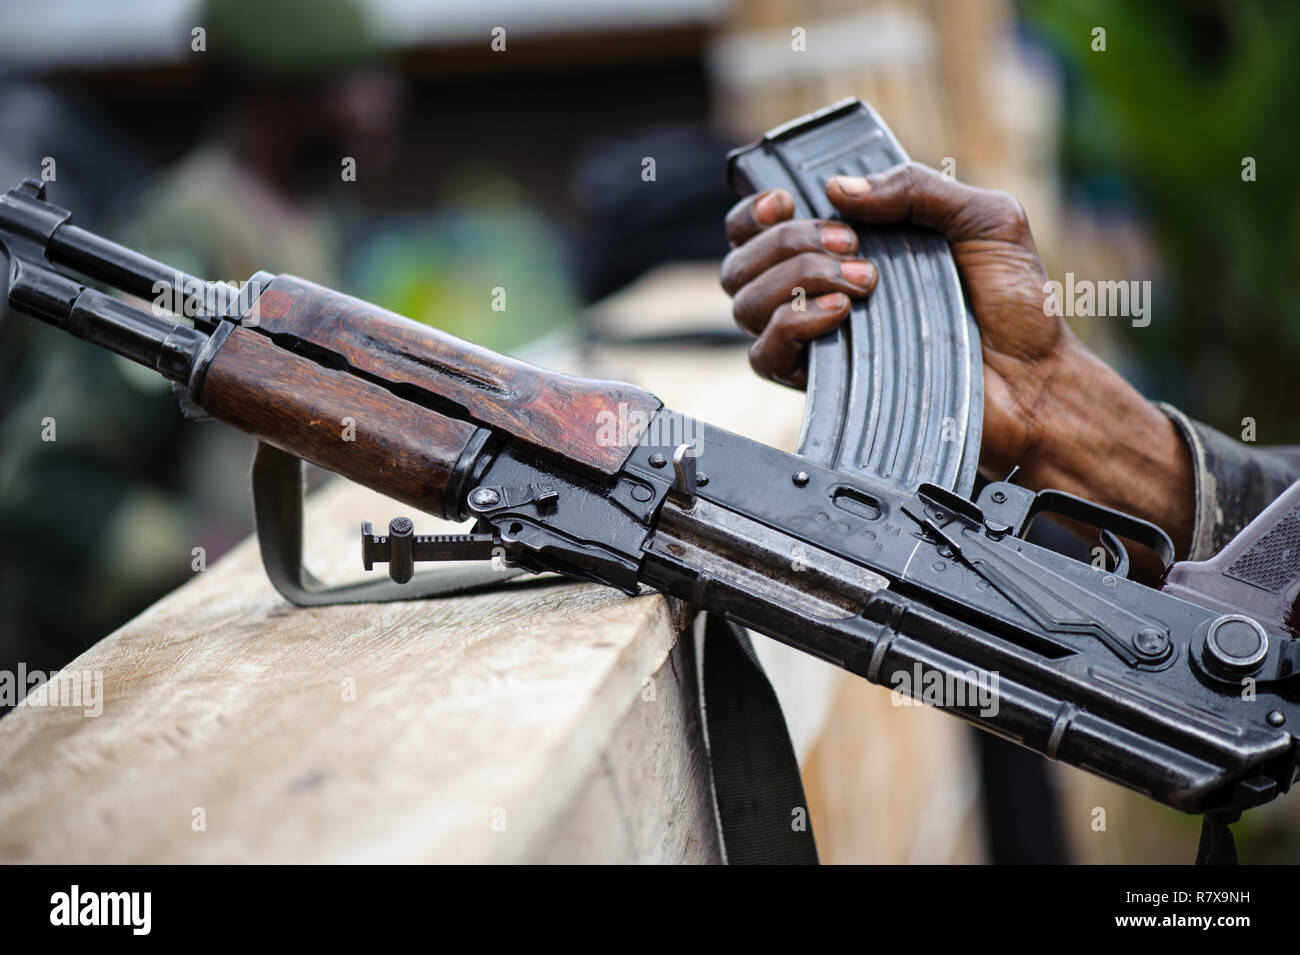 DRC national army soldiers, armed with Kalashnikov AK-47 rifles in Virunga National Park, North Kivu, Democratic Republic of Congo - Stock Image